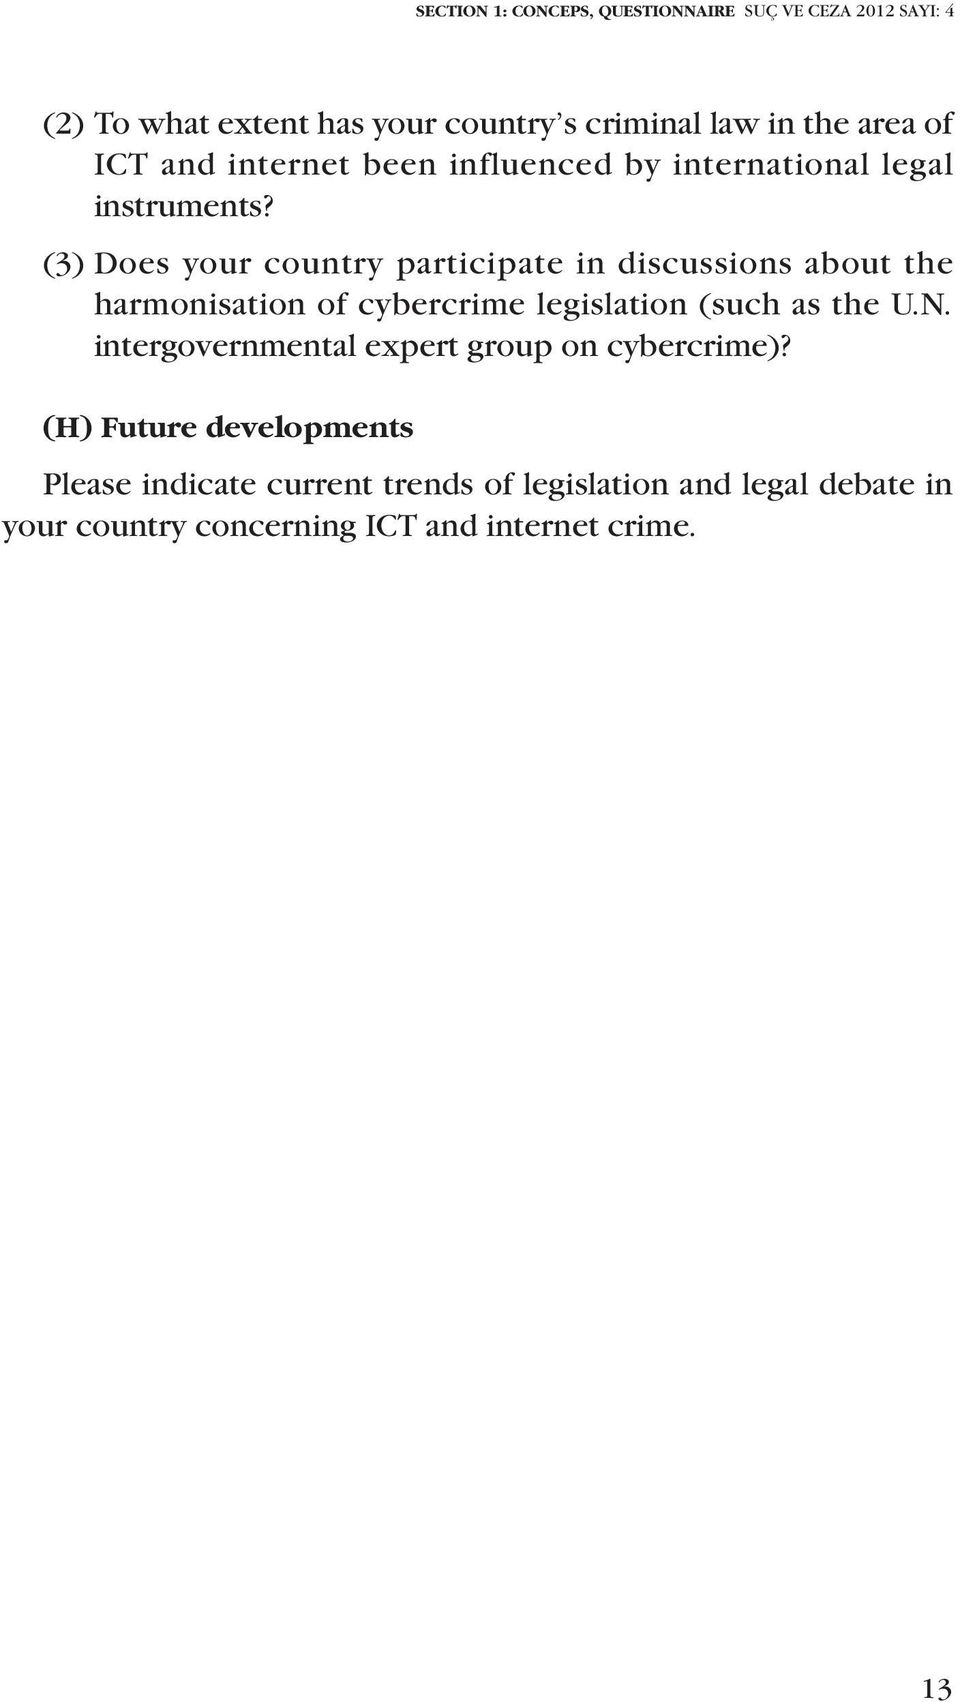 (3) Does your country participate in discussions about the harmonisation of cybercrime legislation (such as the U.N.